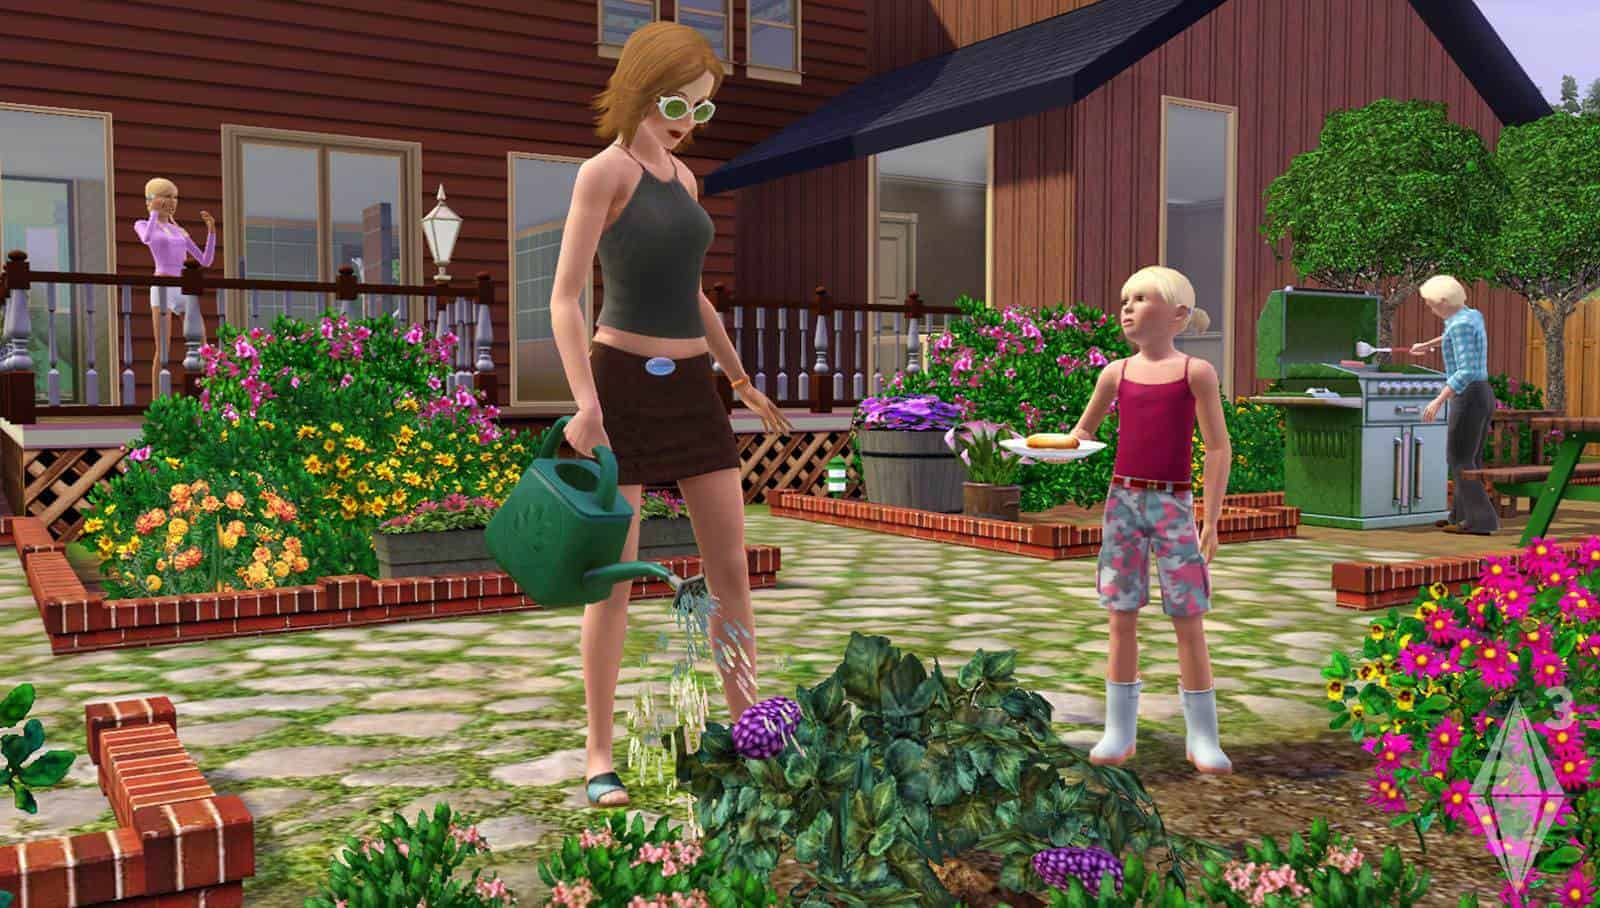 the sims 3 download free windows 10